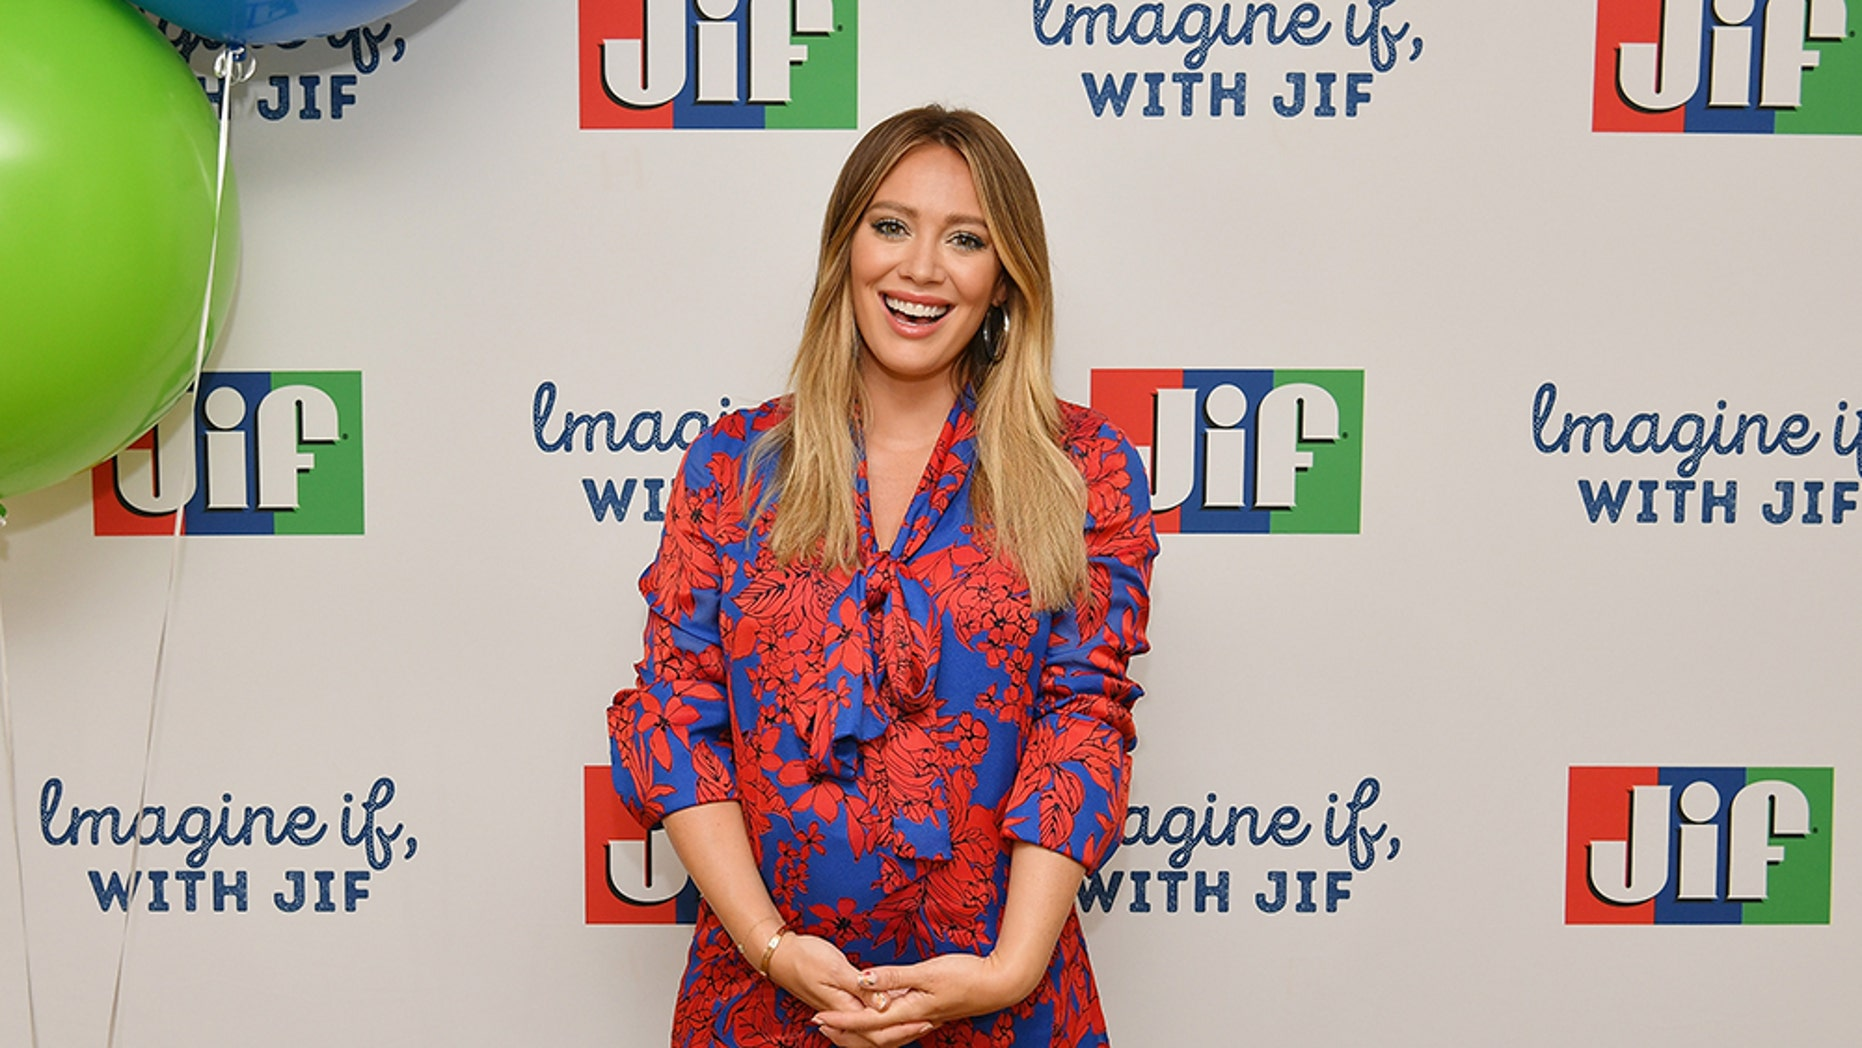 Pregnant Hilary Duff confronts paparazzi who she says was stalking her: 'This is not OK'